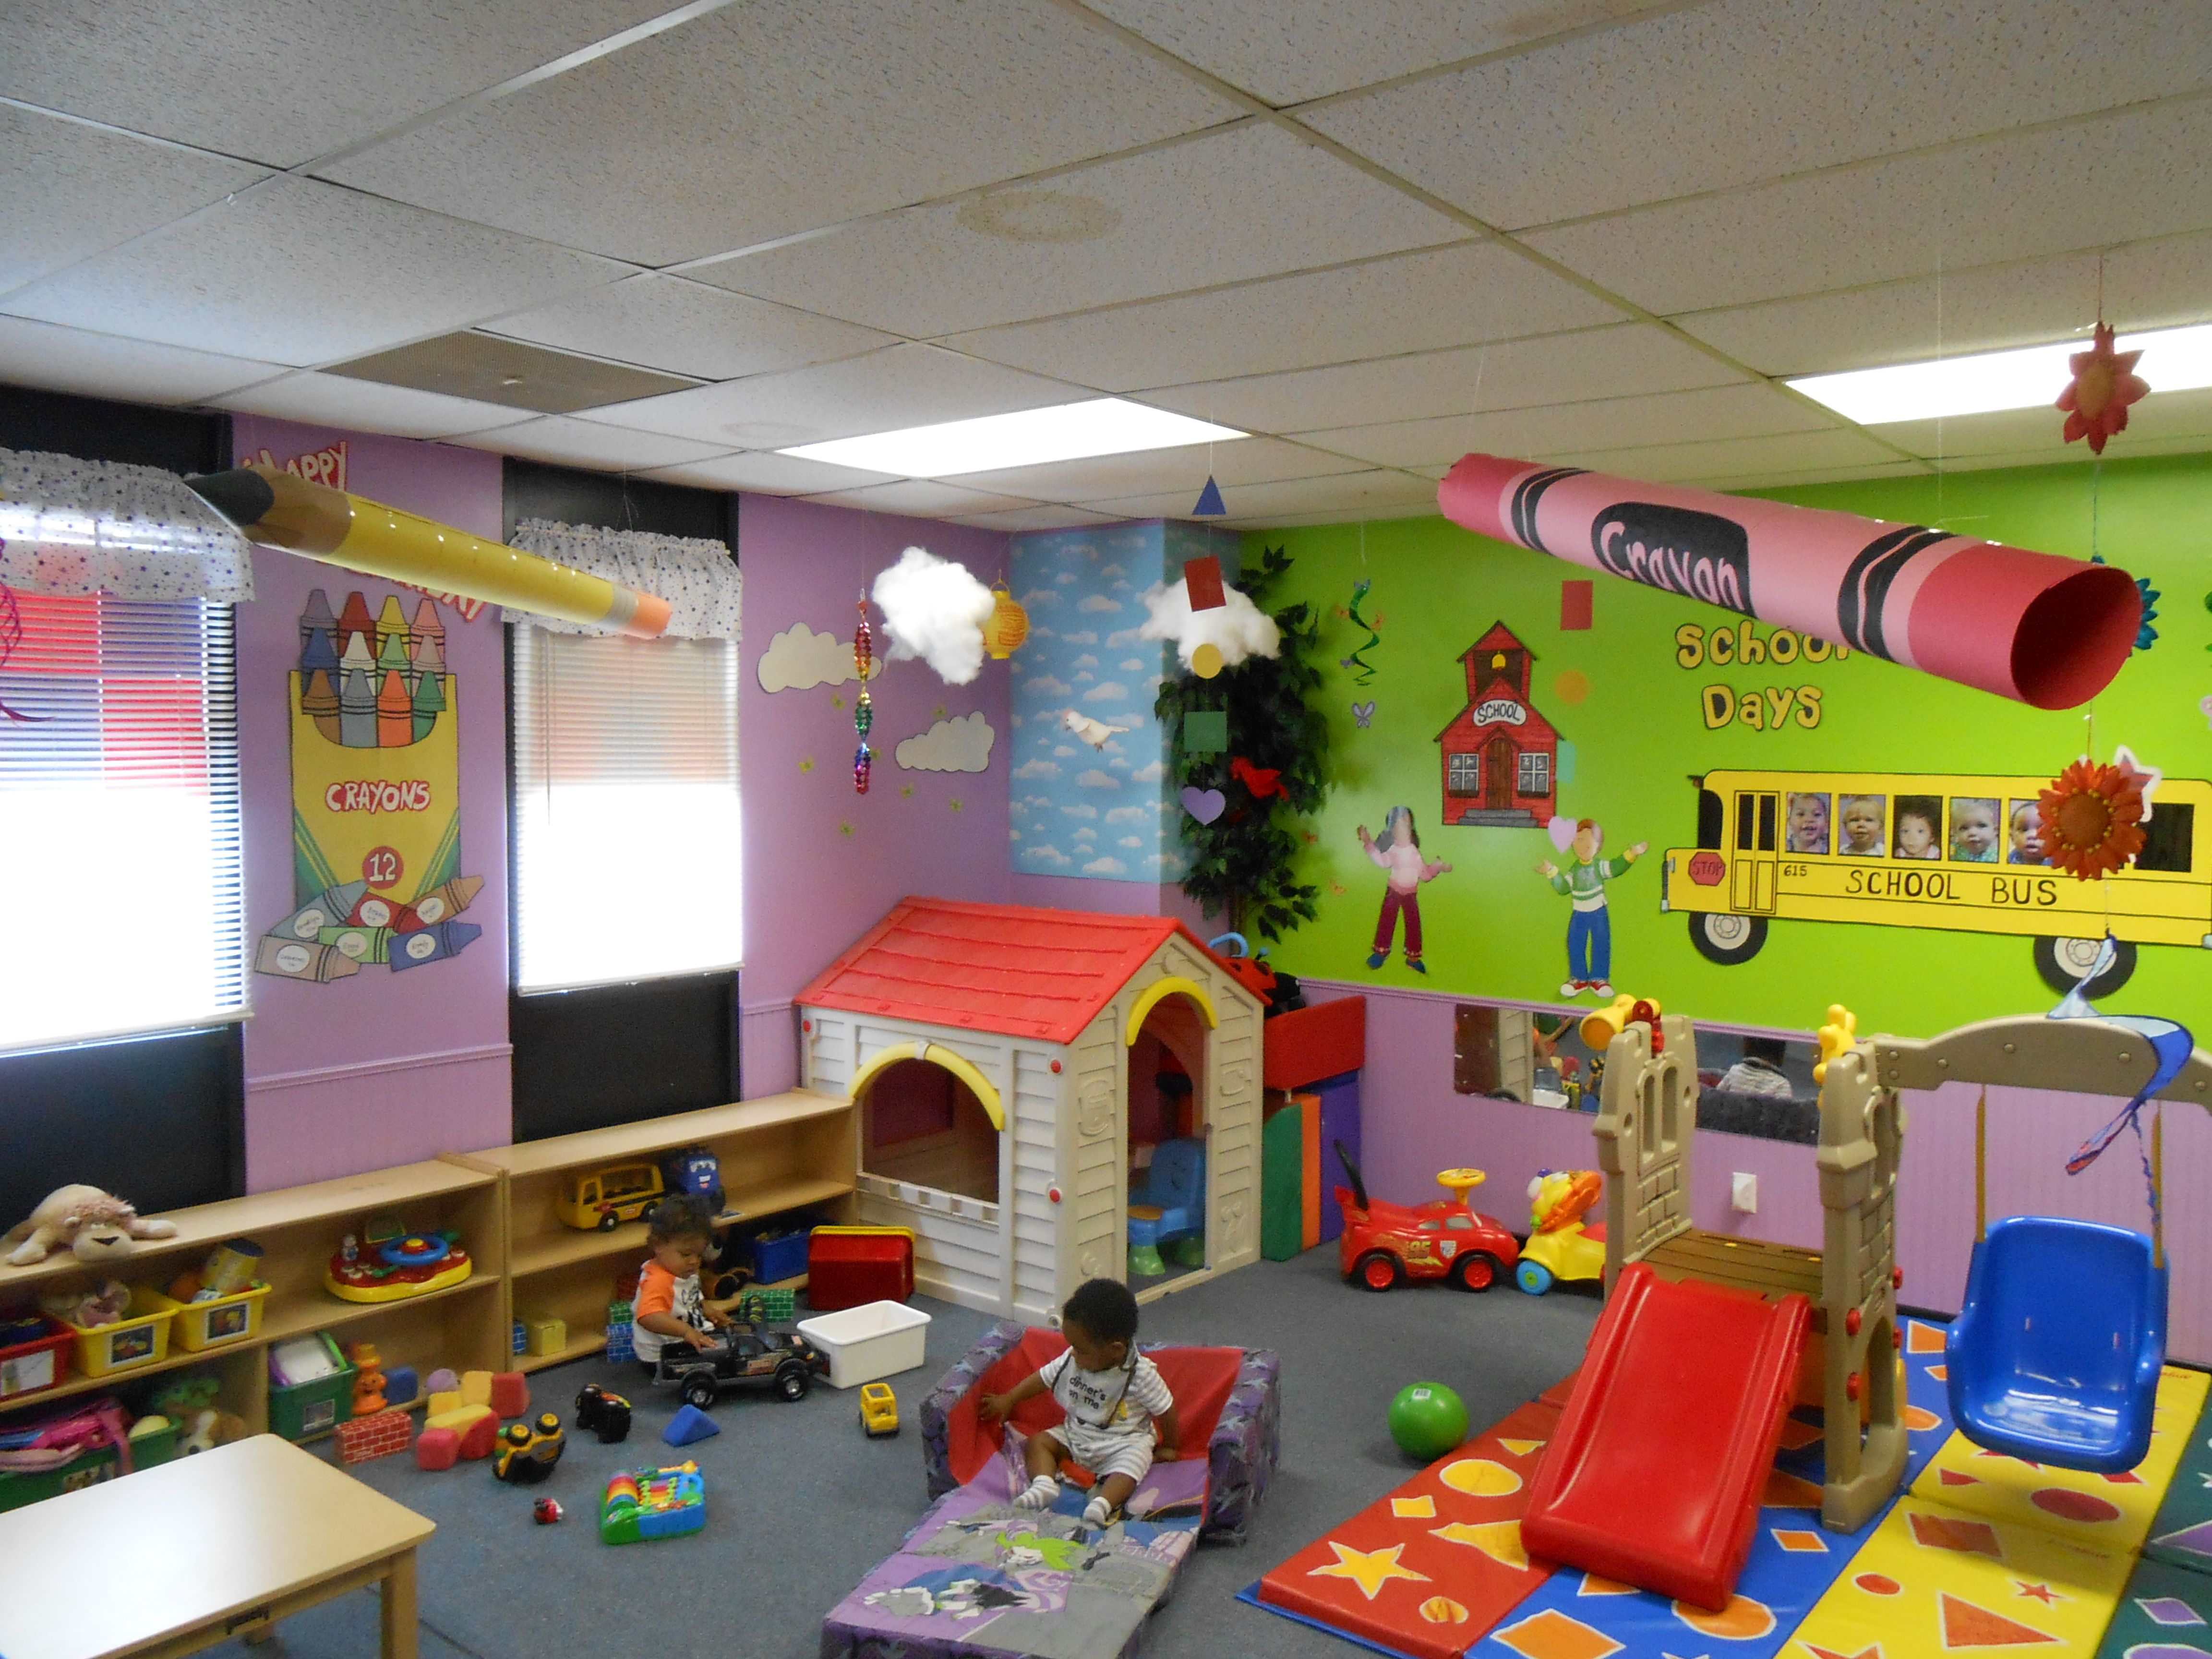 Back To School Theme D Objects From Ceiling Toddler Preschool - Home daycare design ideas